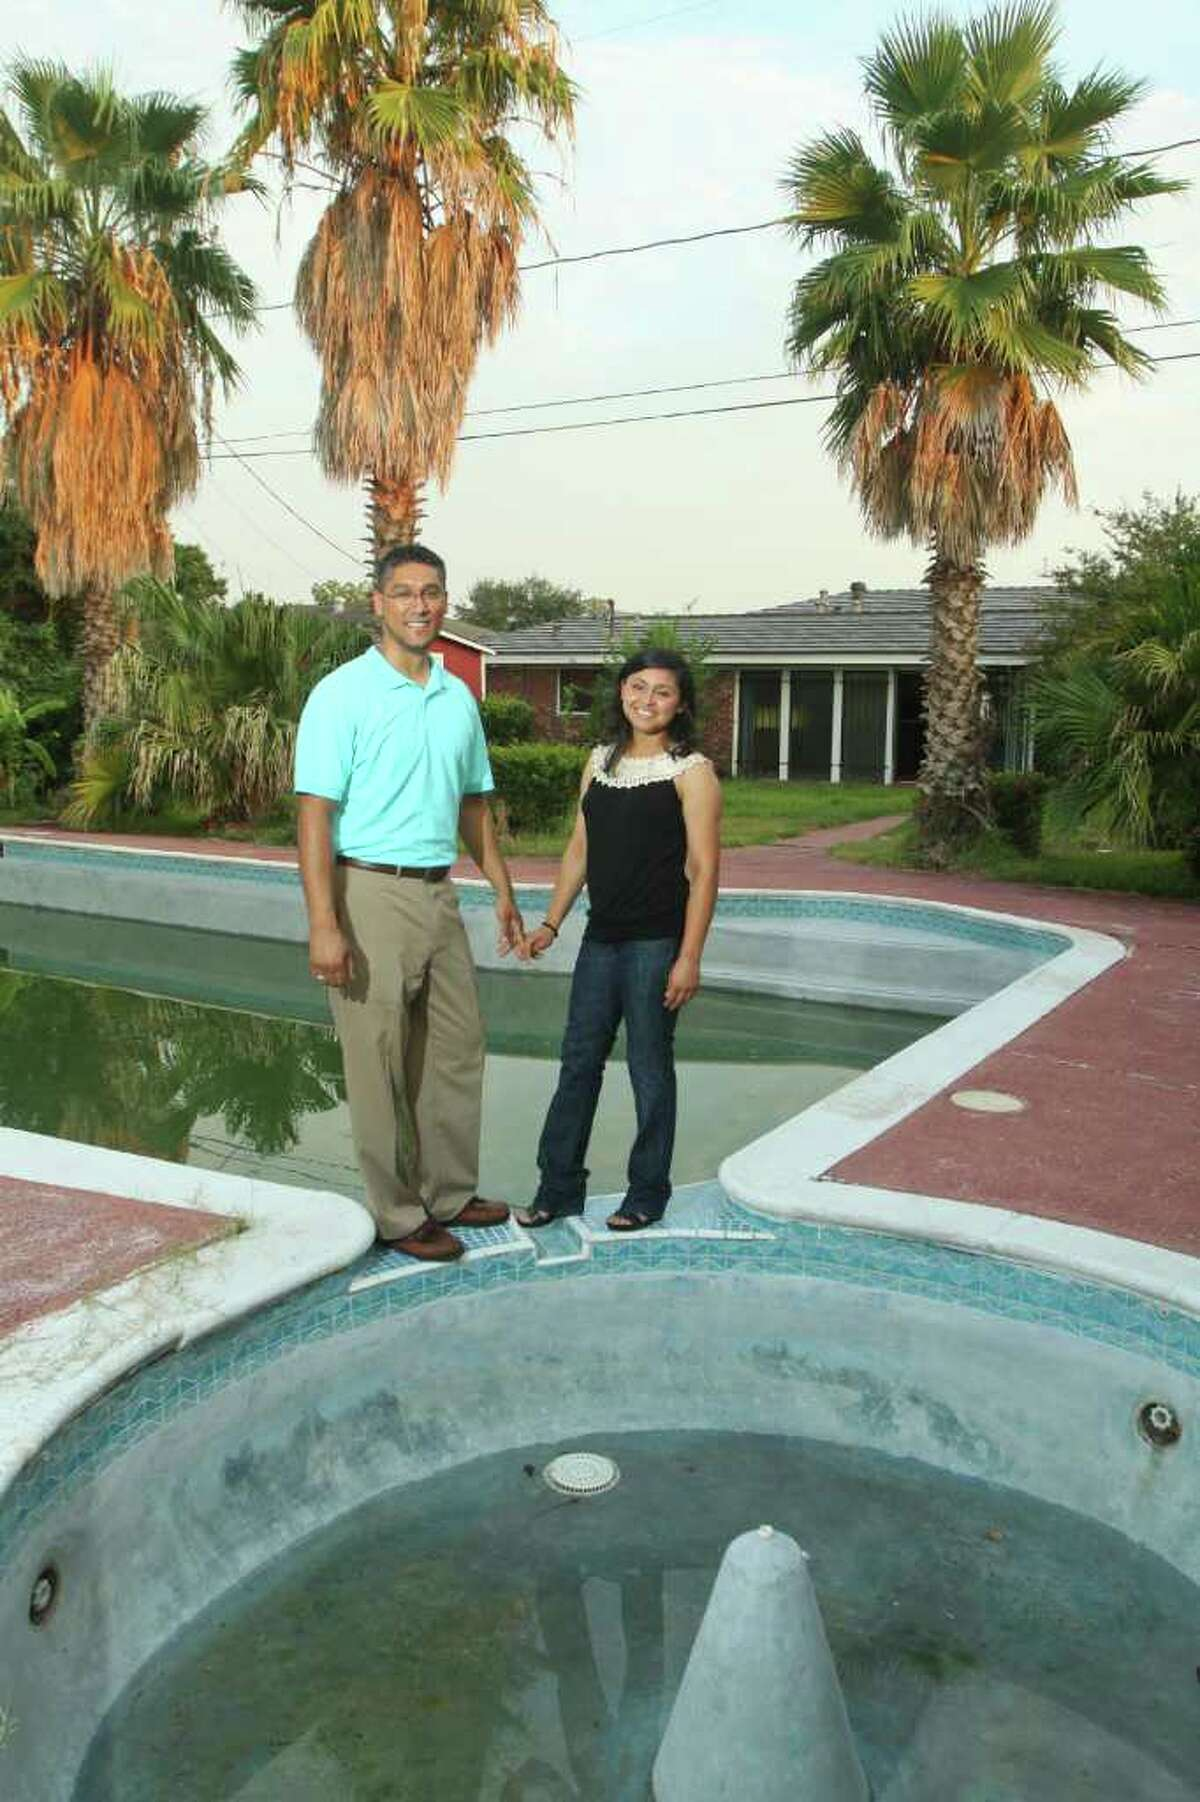 """Sean Evans and Dalia Oliva will be moving into this house in Meadowbrook Freeway. Evans says the house's """"wow factor"""" is a wall of windows overlooking the pool and palm trees."""